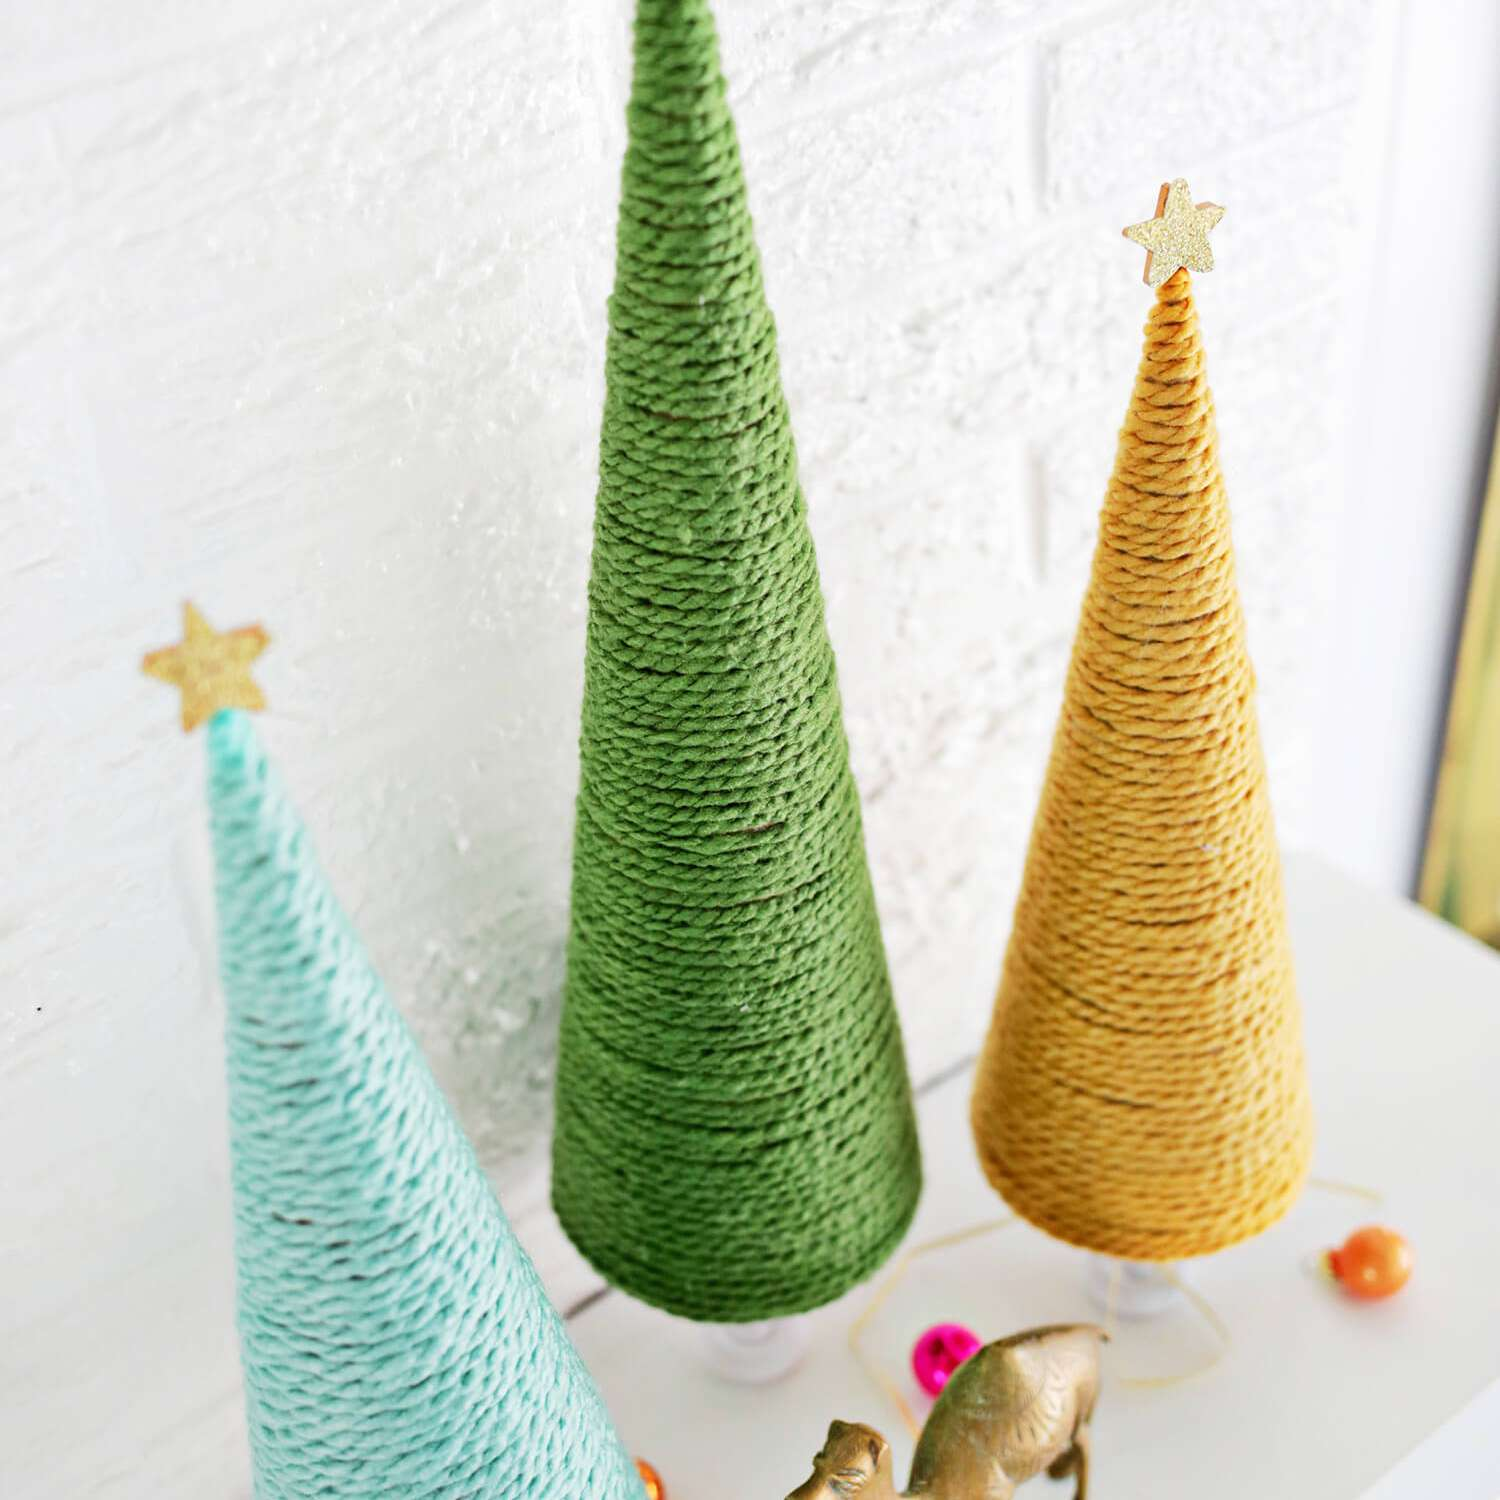 Blue, green and yellow trees made from yarn wrapped around a cone form.